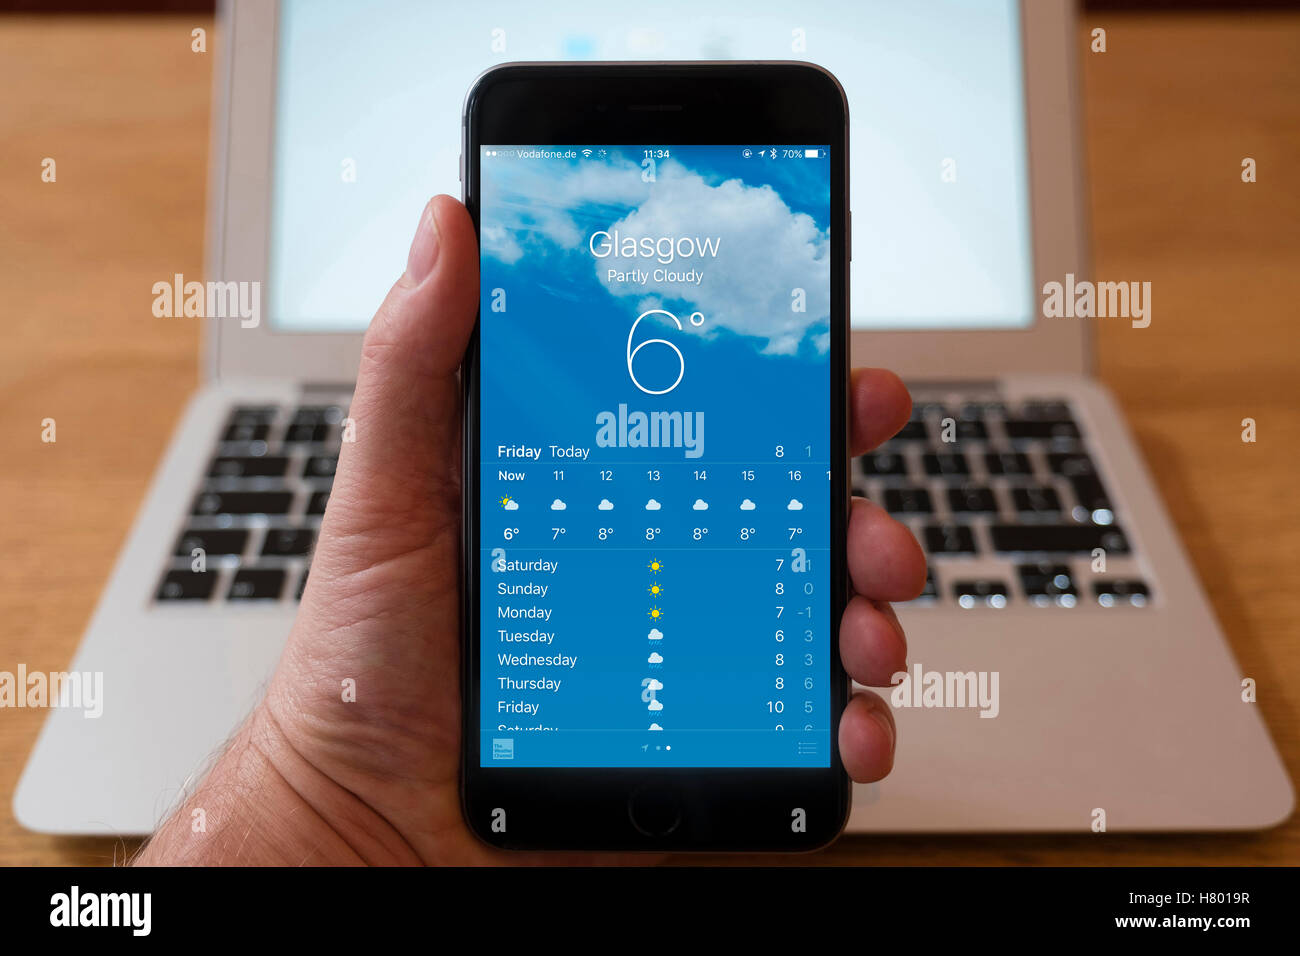 Using iPhone smart phone to display weather forecast for Glasgow, UK - Stock Image